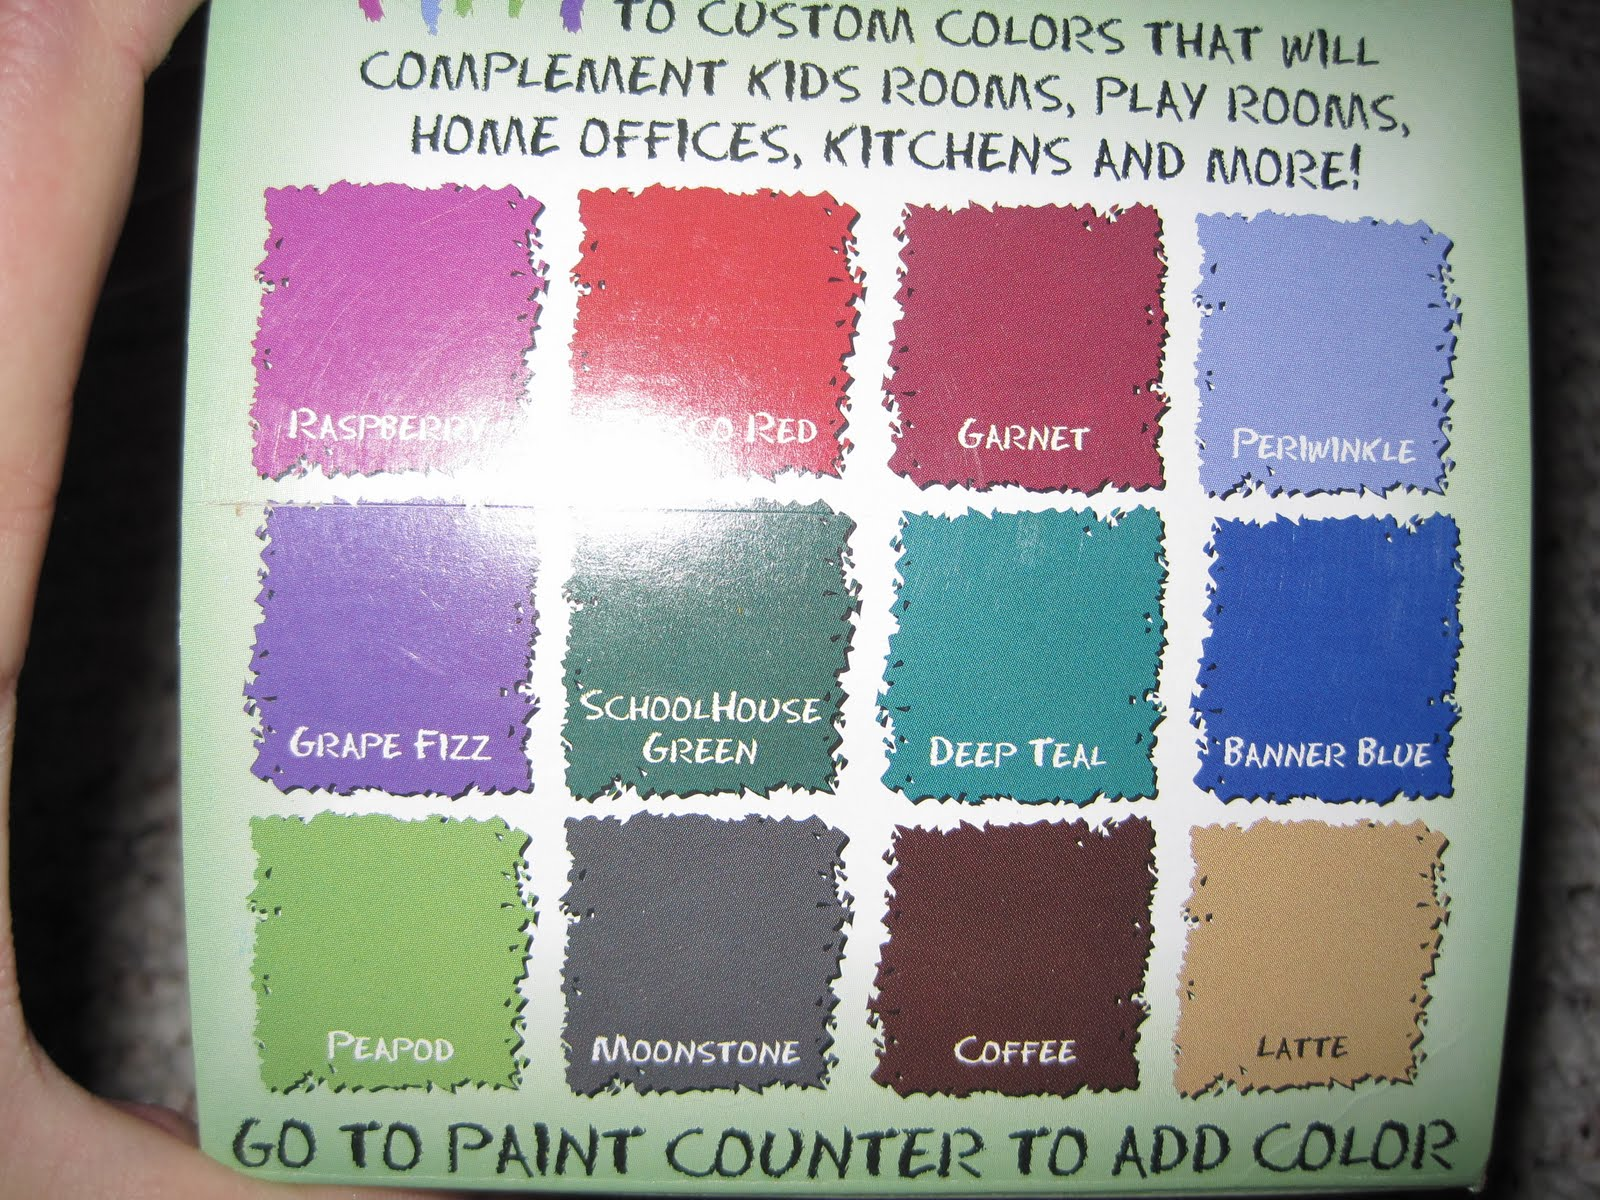 Bedroom Colors Home Depot chalkboard paint colors home depot - laura williams